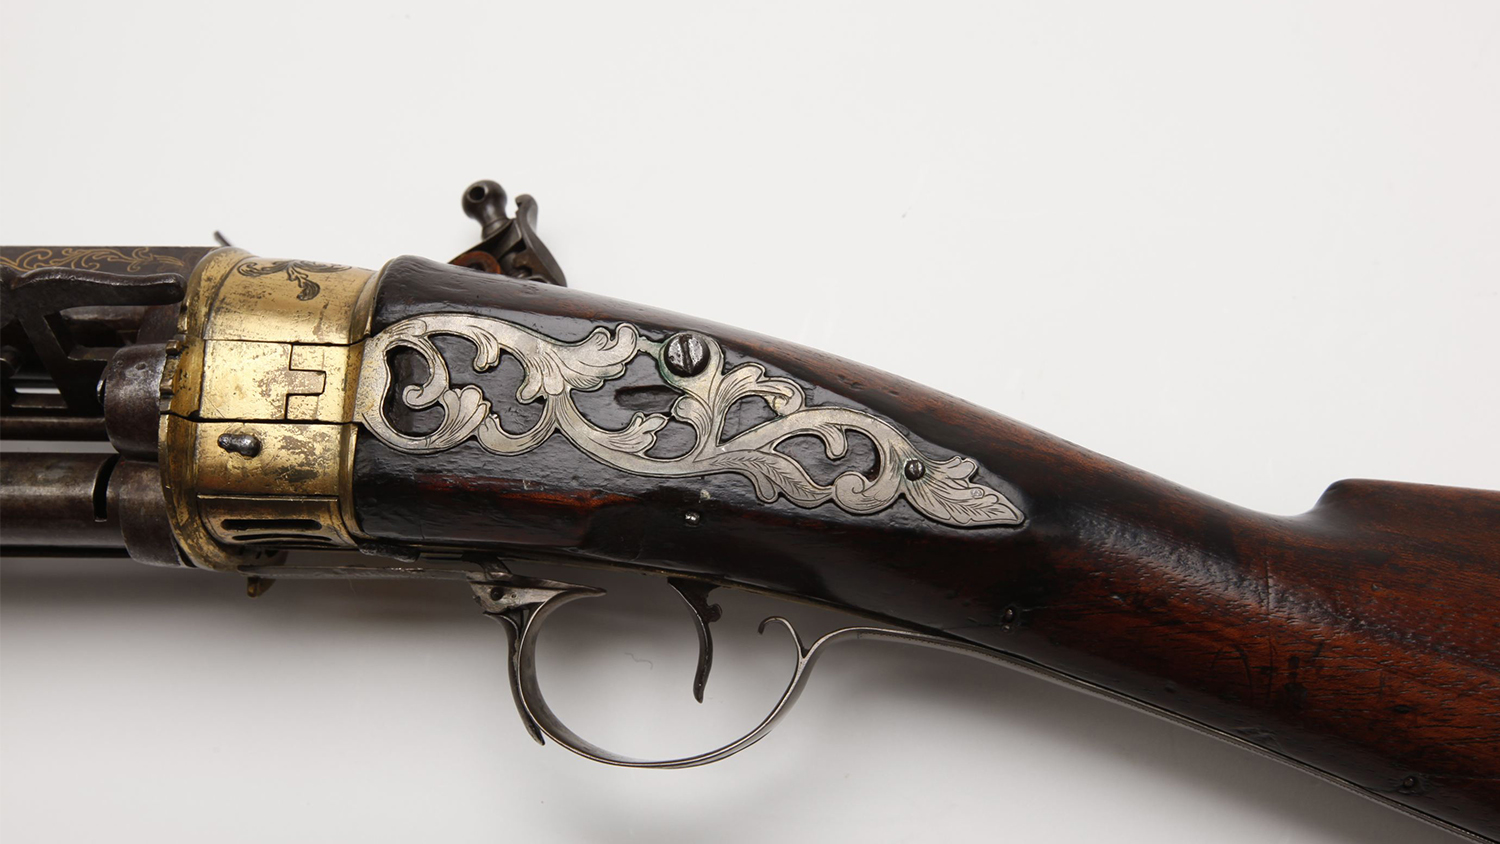 A Brief History of Firearms: The Percussion System